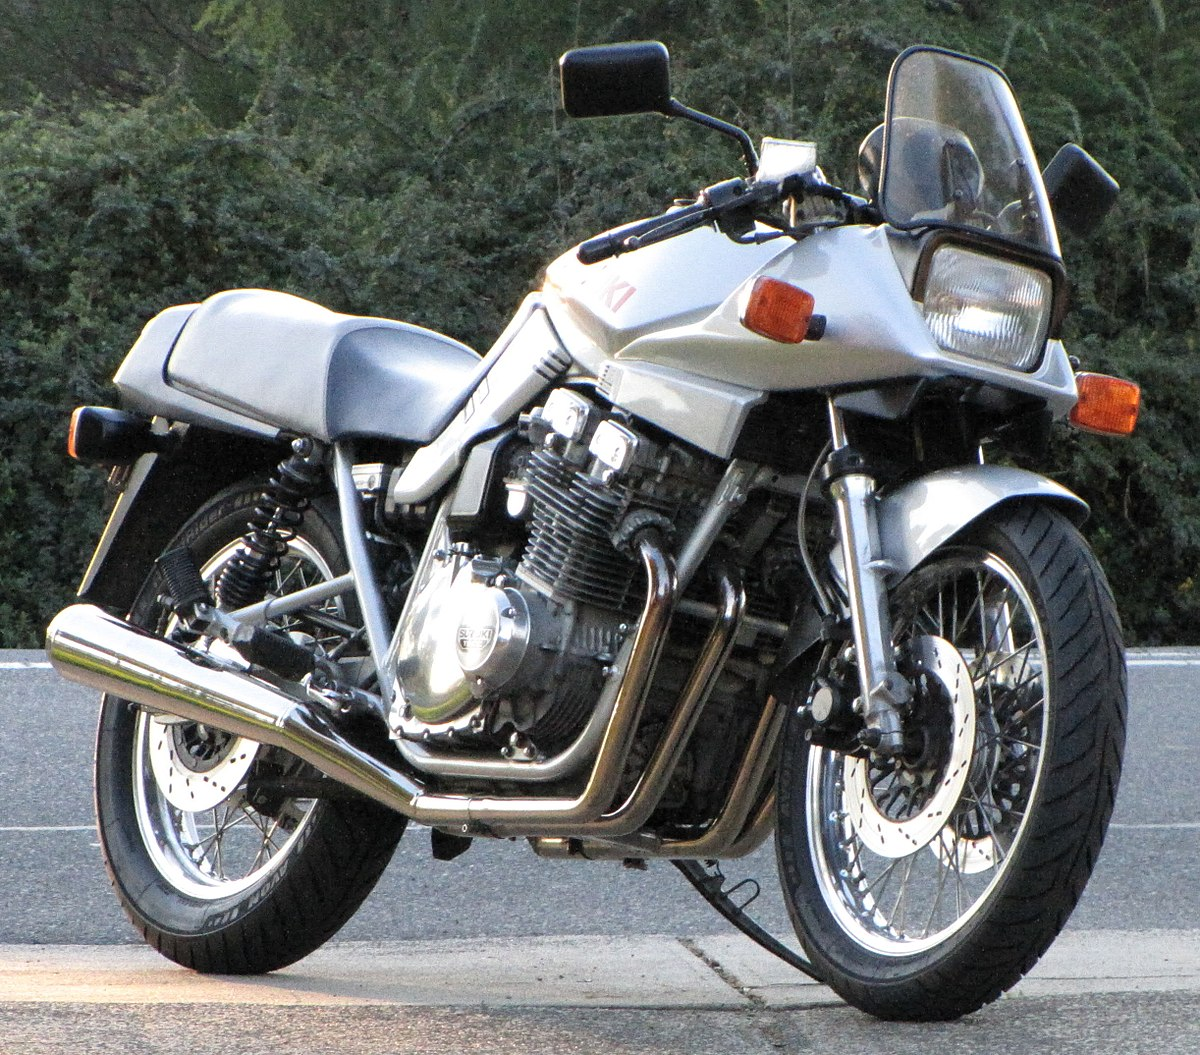 Suzuki katana photo - 10